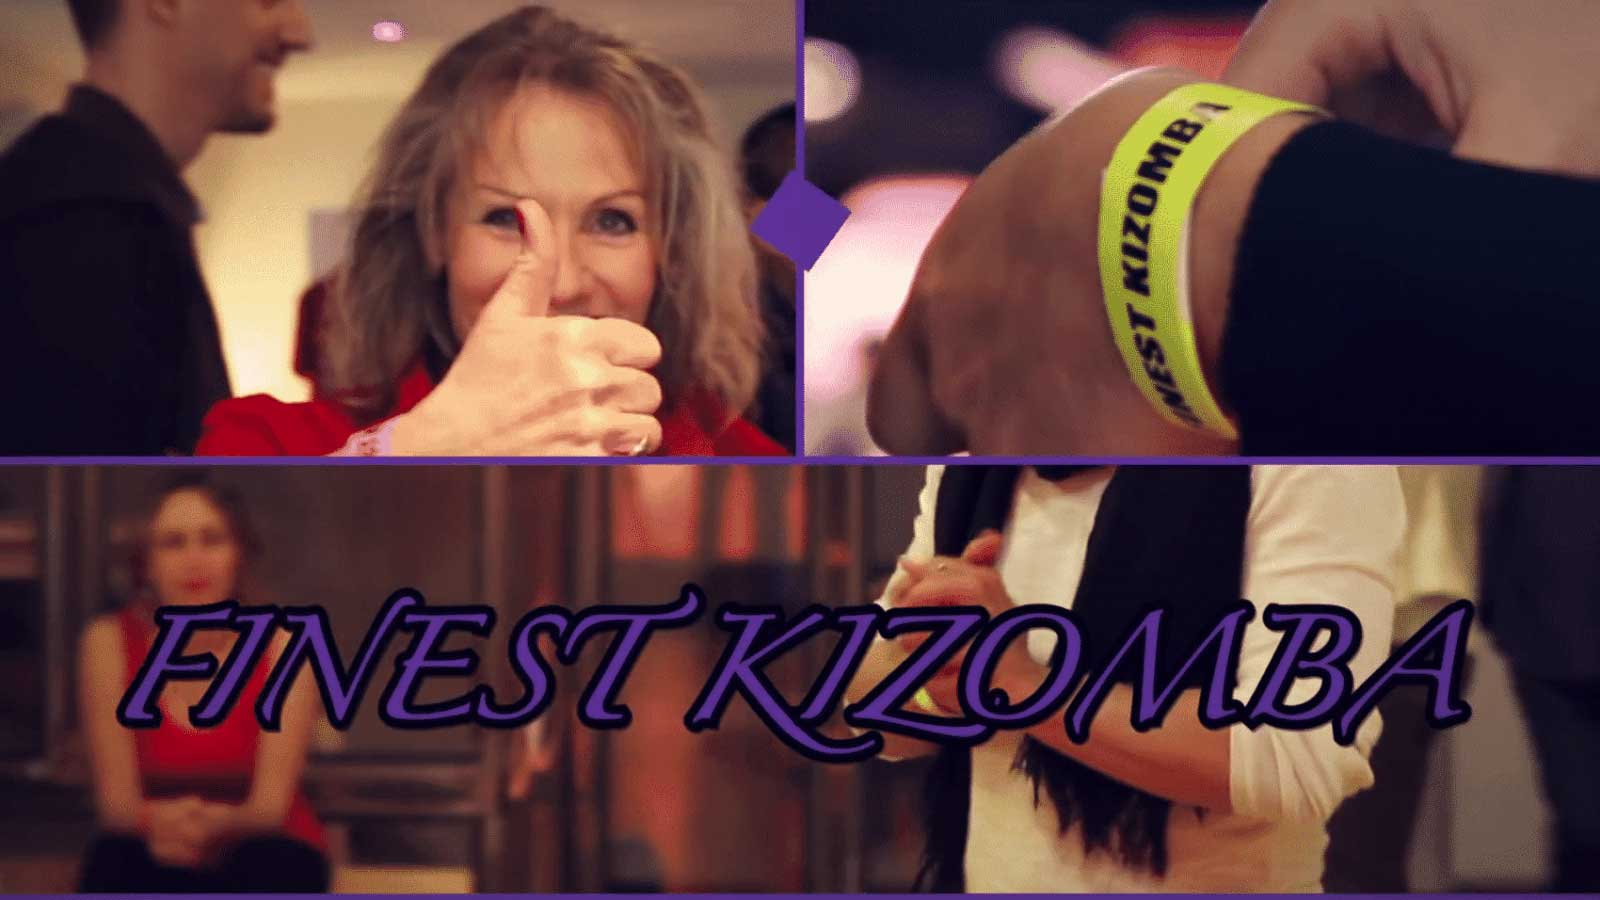 finest-kizomba-video